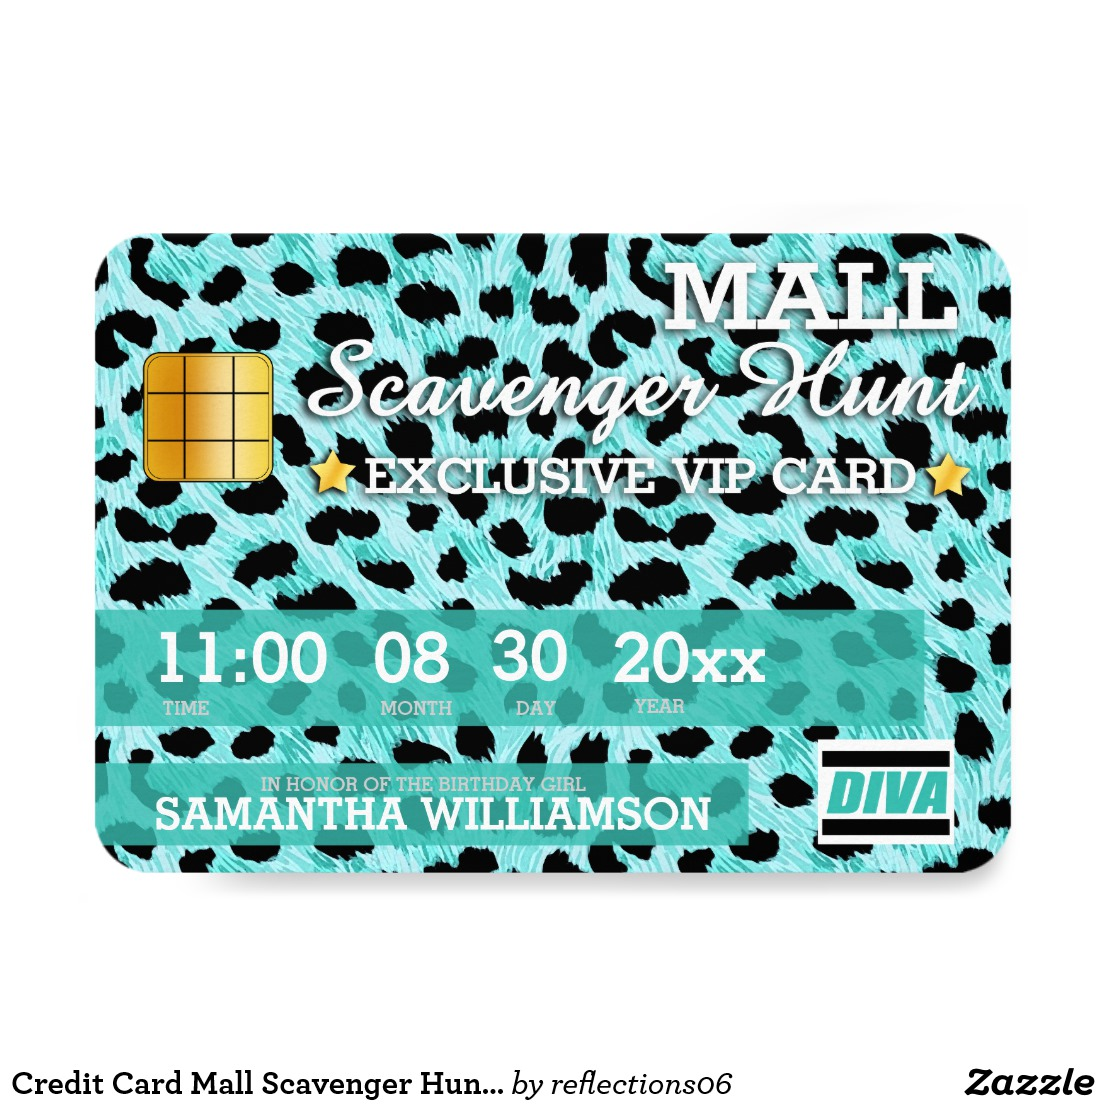 mall exclusive blue debit card example1